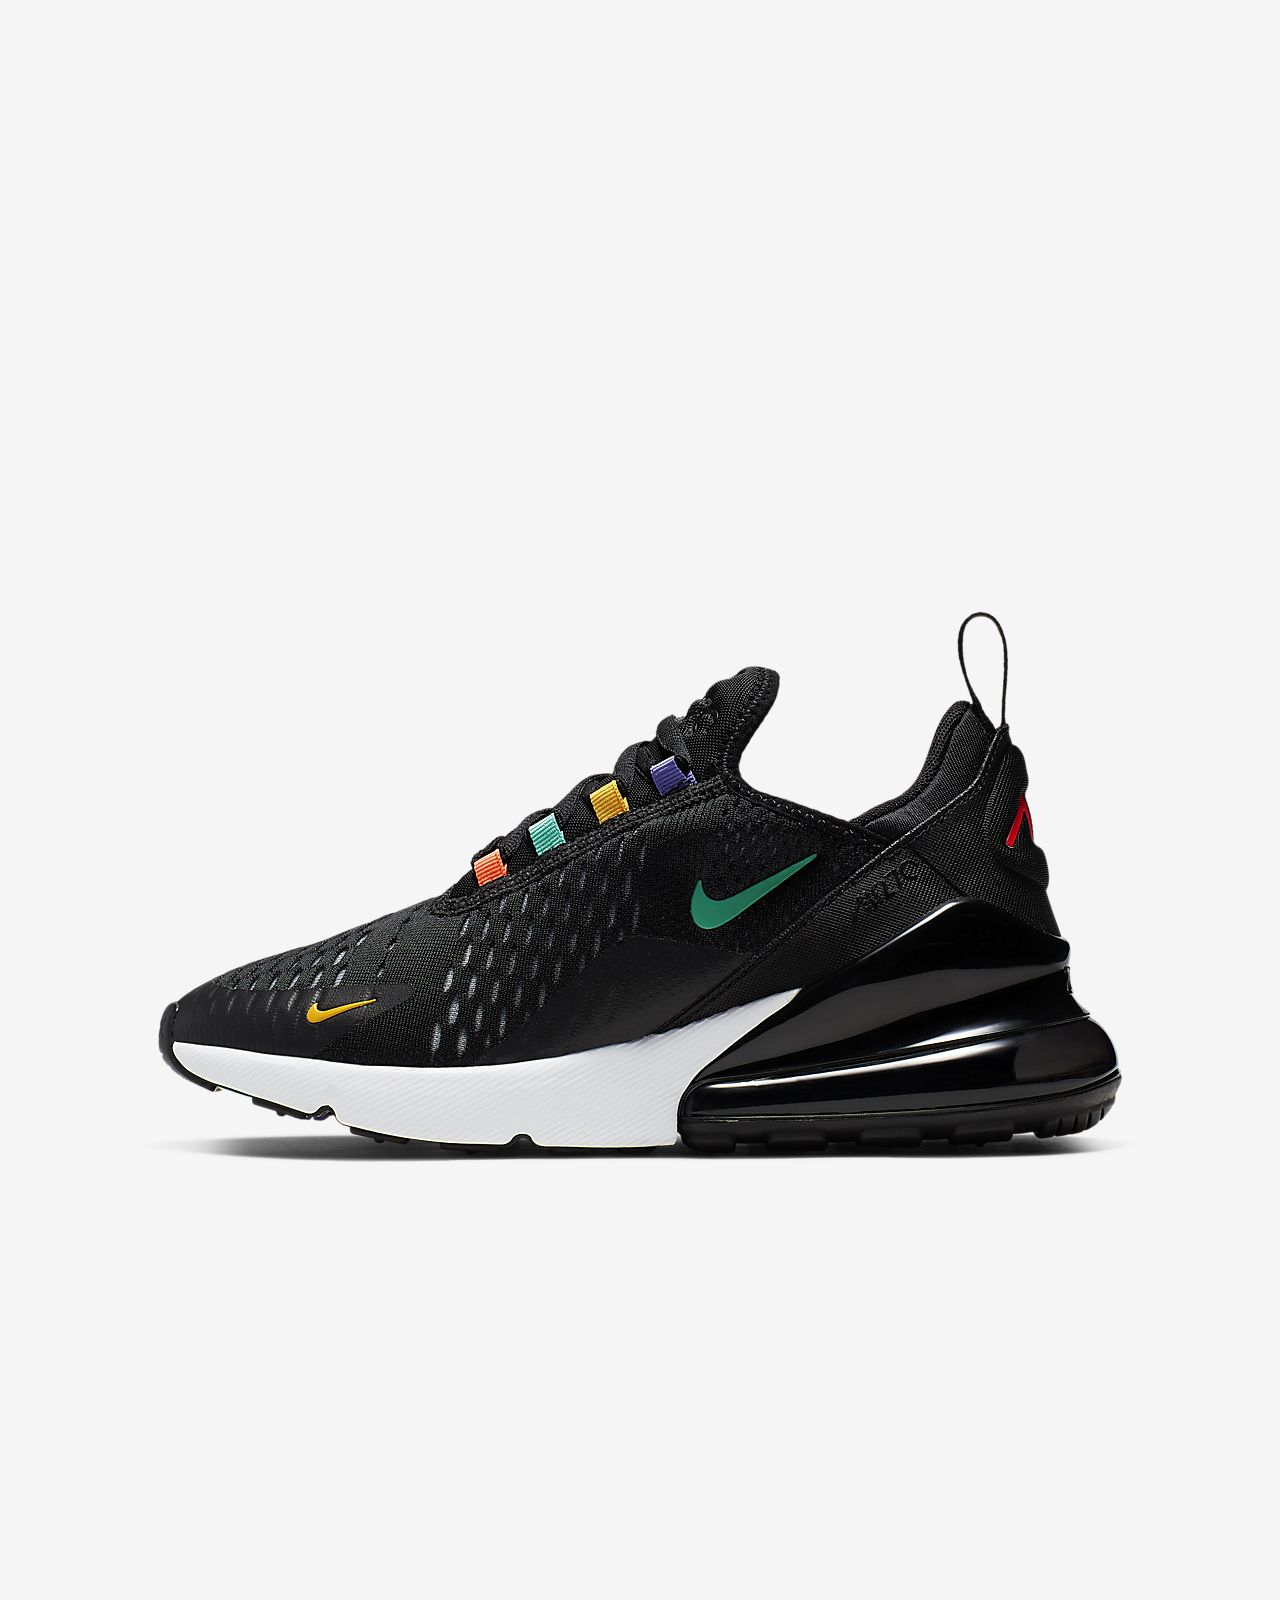 promo code be018 411fc Nike Air Max 270 Game Change Big Kids' Shoe